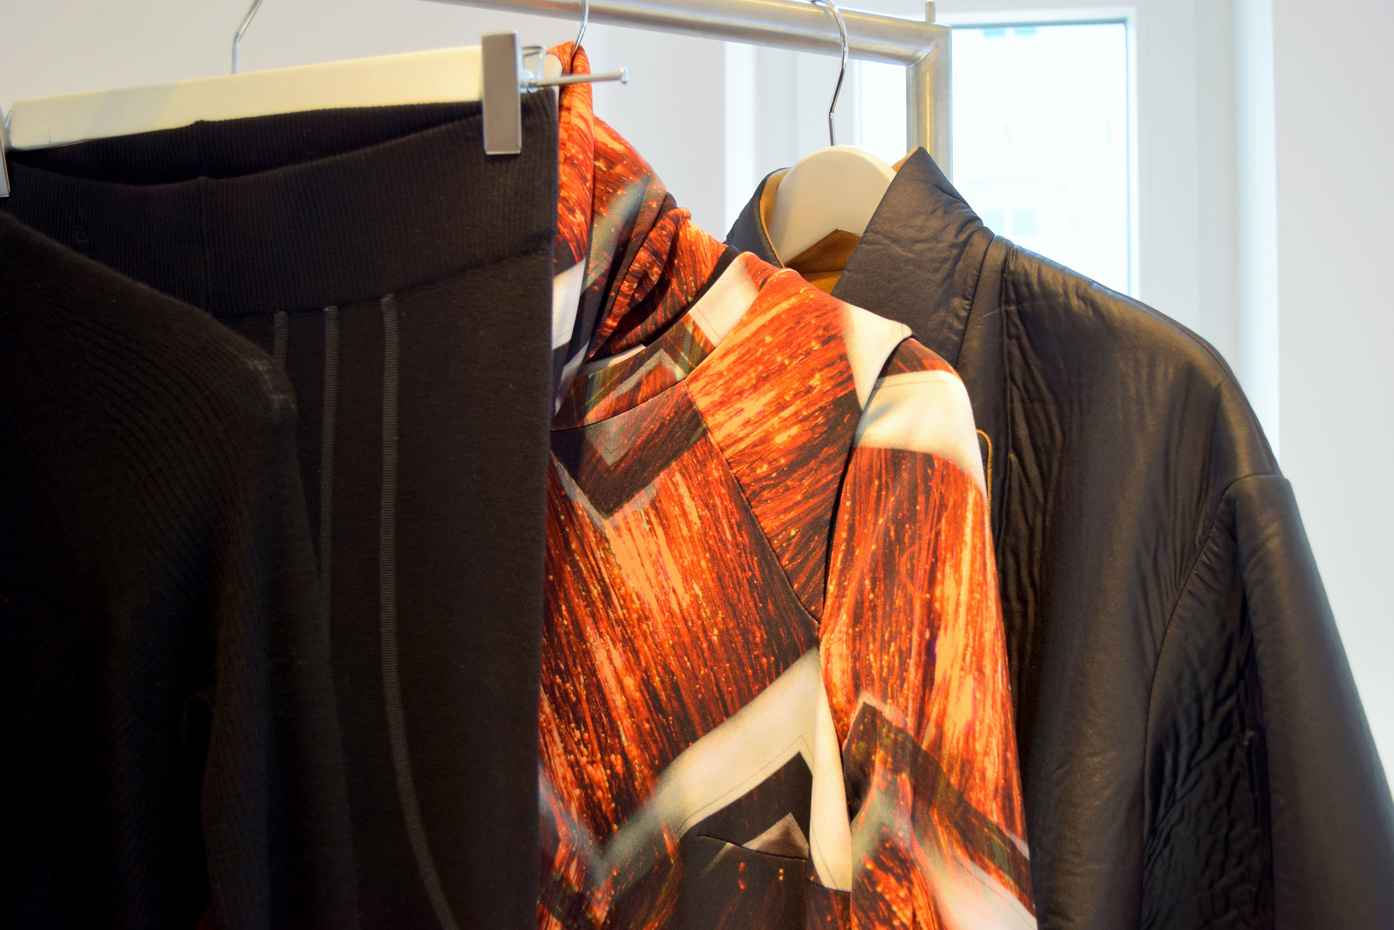 H&M Studio AW15 collection